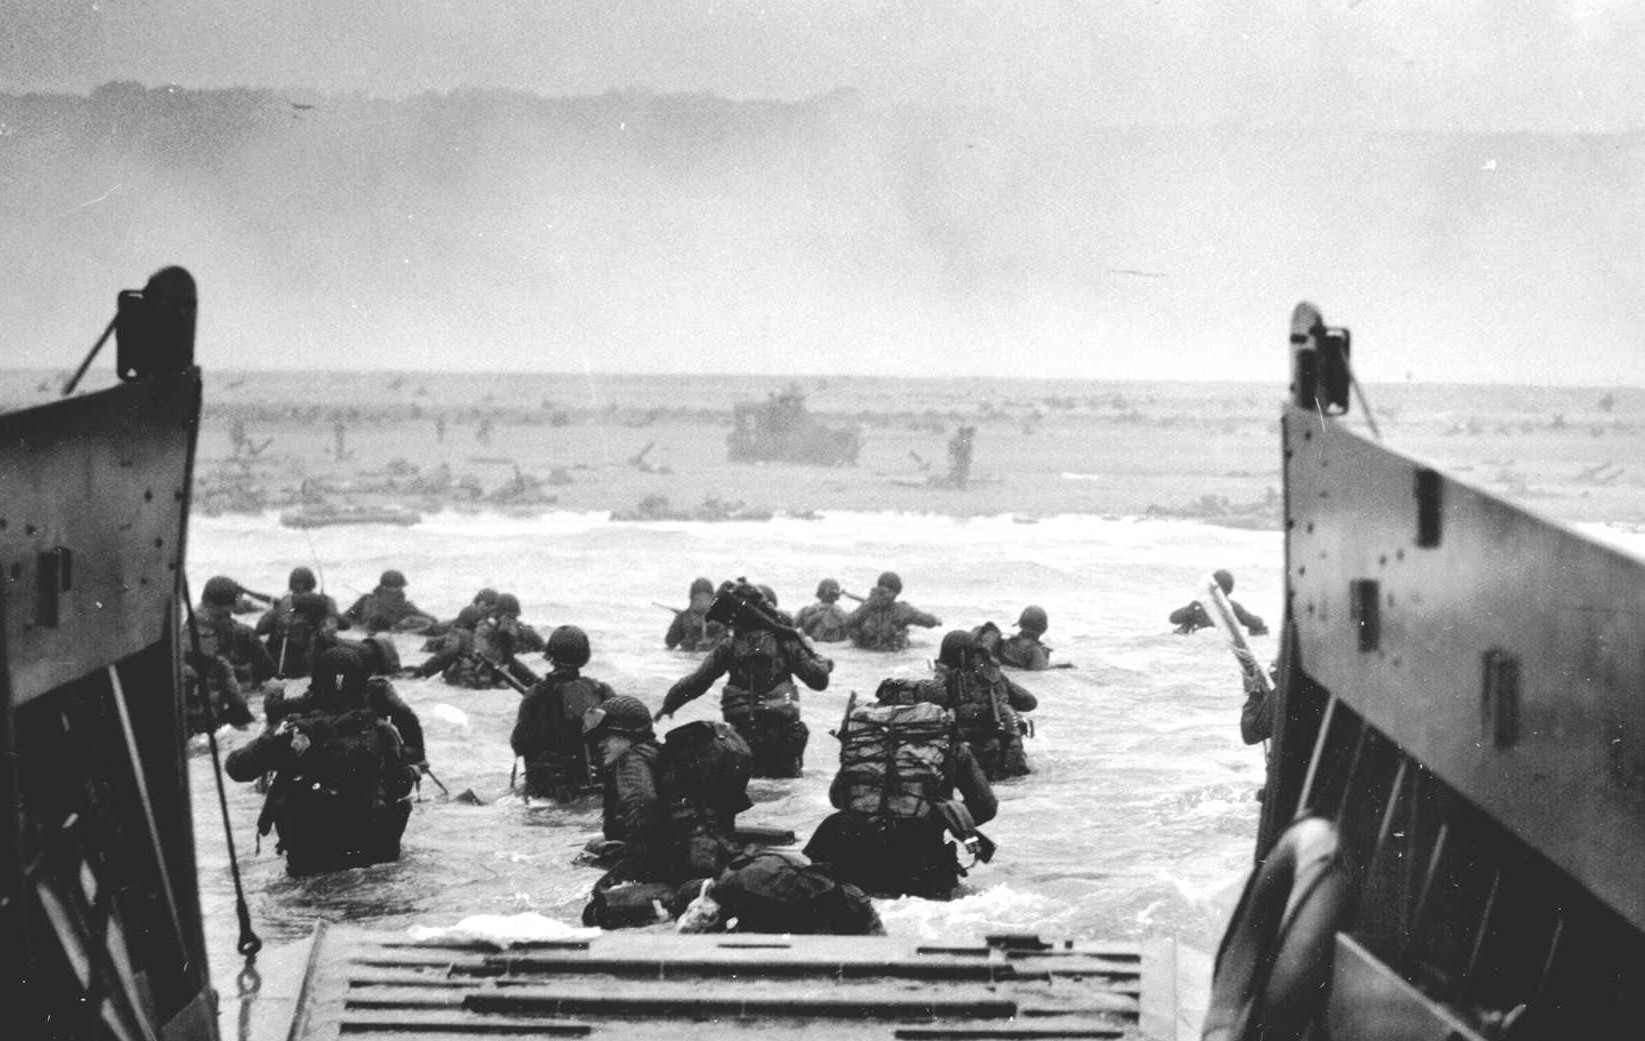 D Day Invasion D-Day was the largest